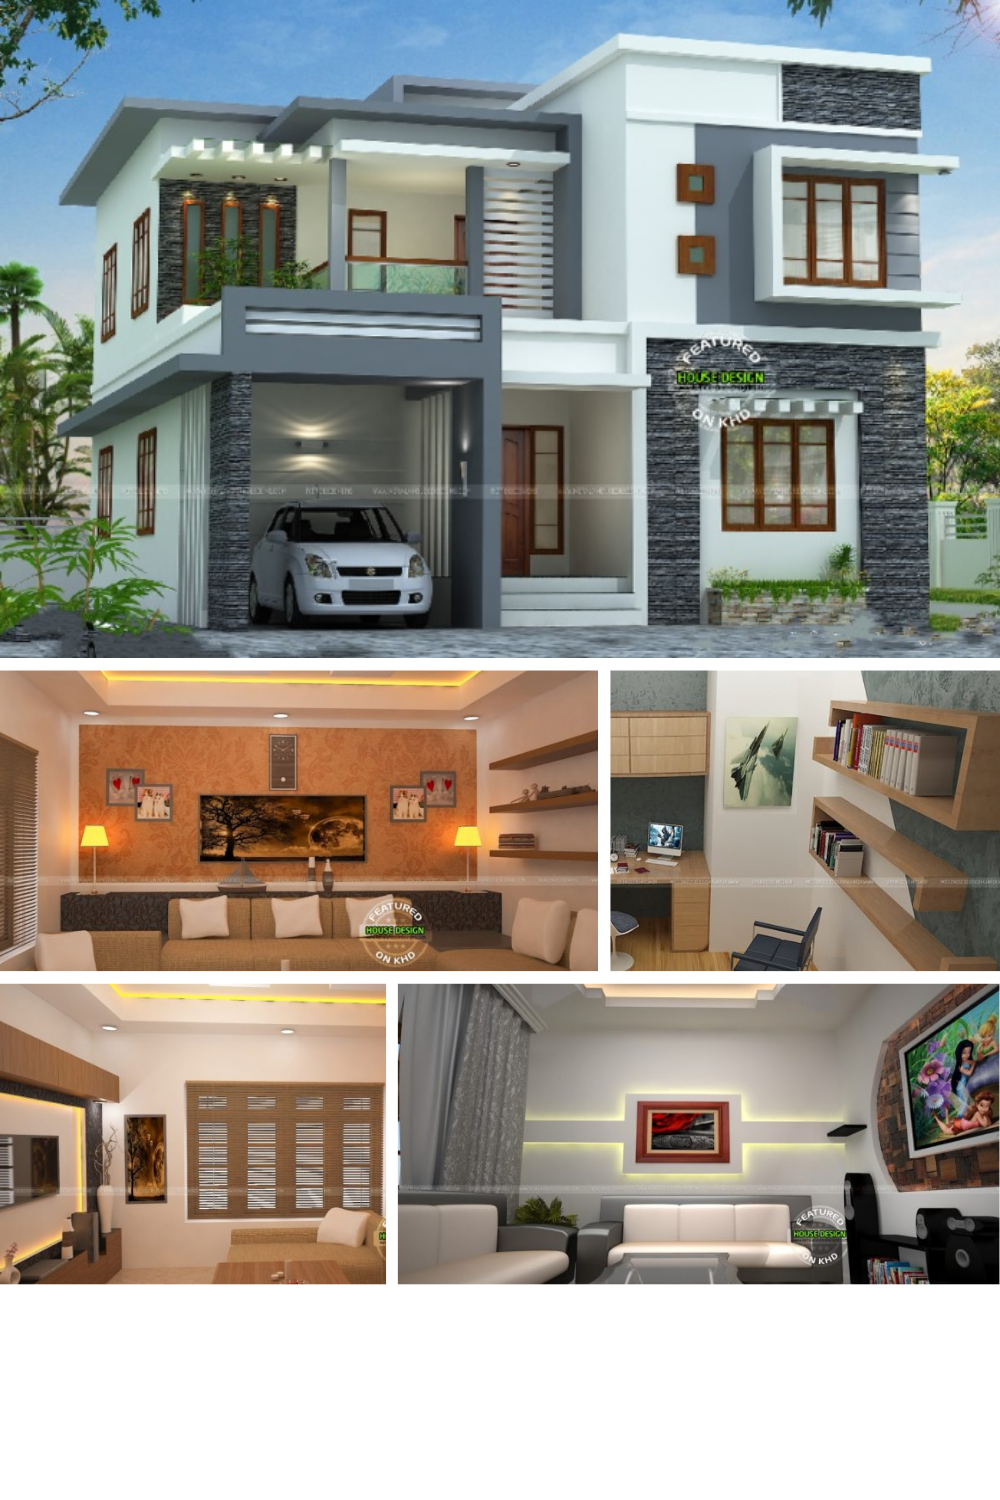 Spectacular Contemporary Two Story Residence With Interior Design Concepts In 2020 Concept Design House Design Interior Design Concepts